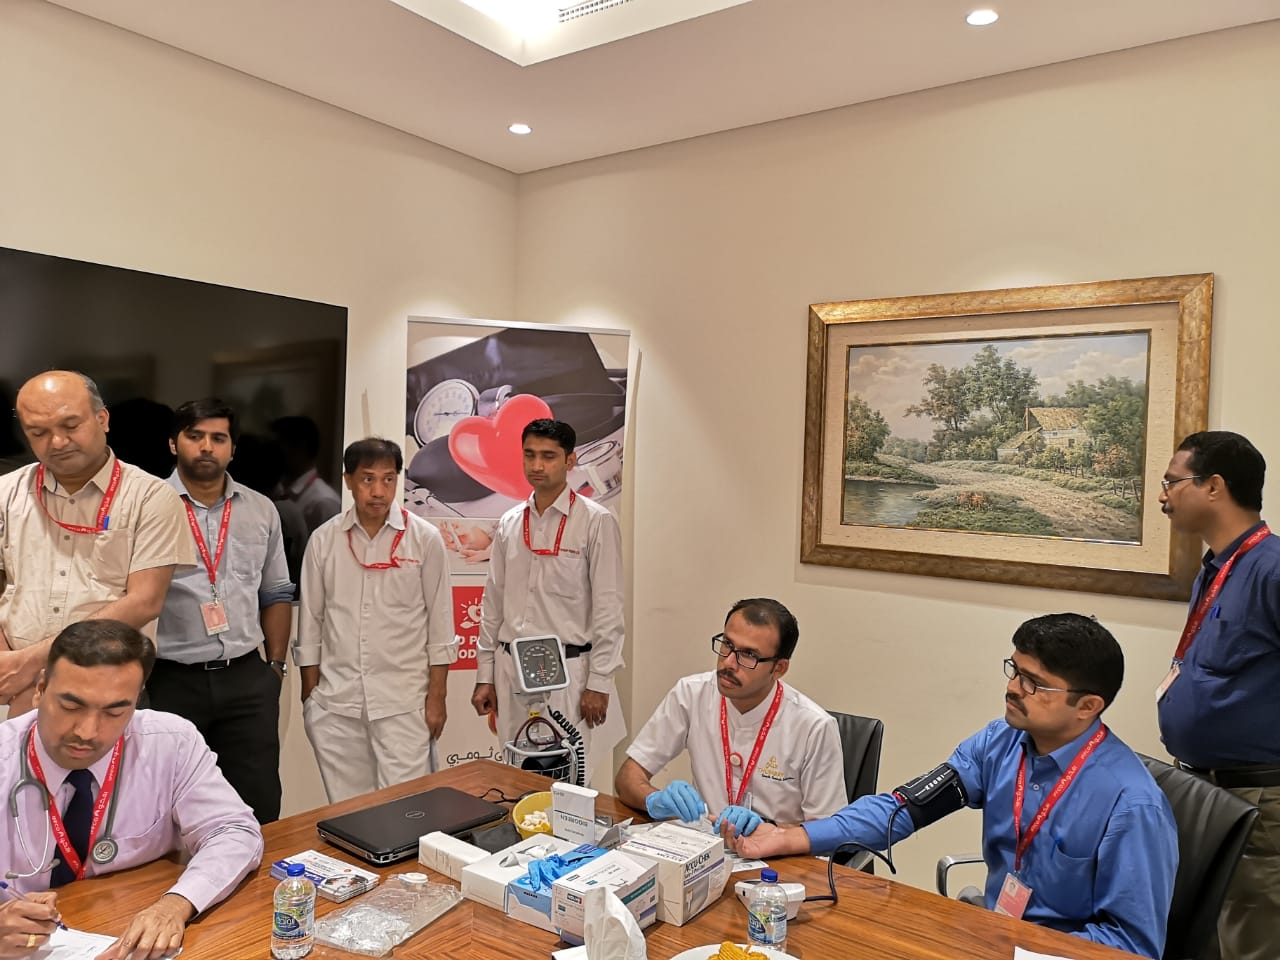 Thumbay Hospital Day Care, Muweilah-Sharjah Conducts Free Health Camp at IFFCO Group Sharjah